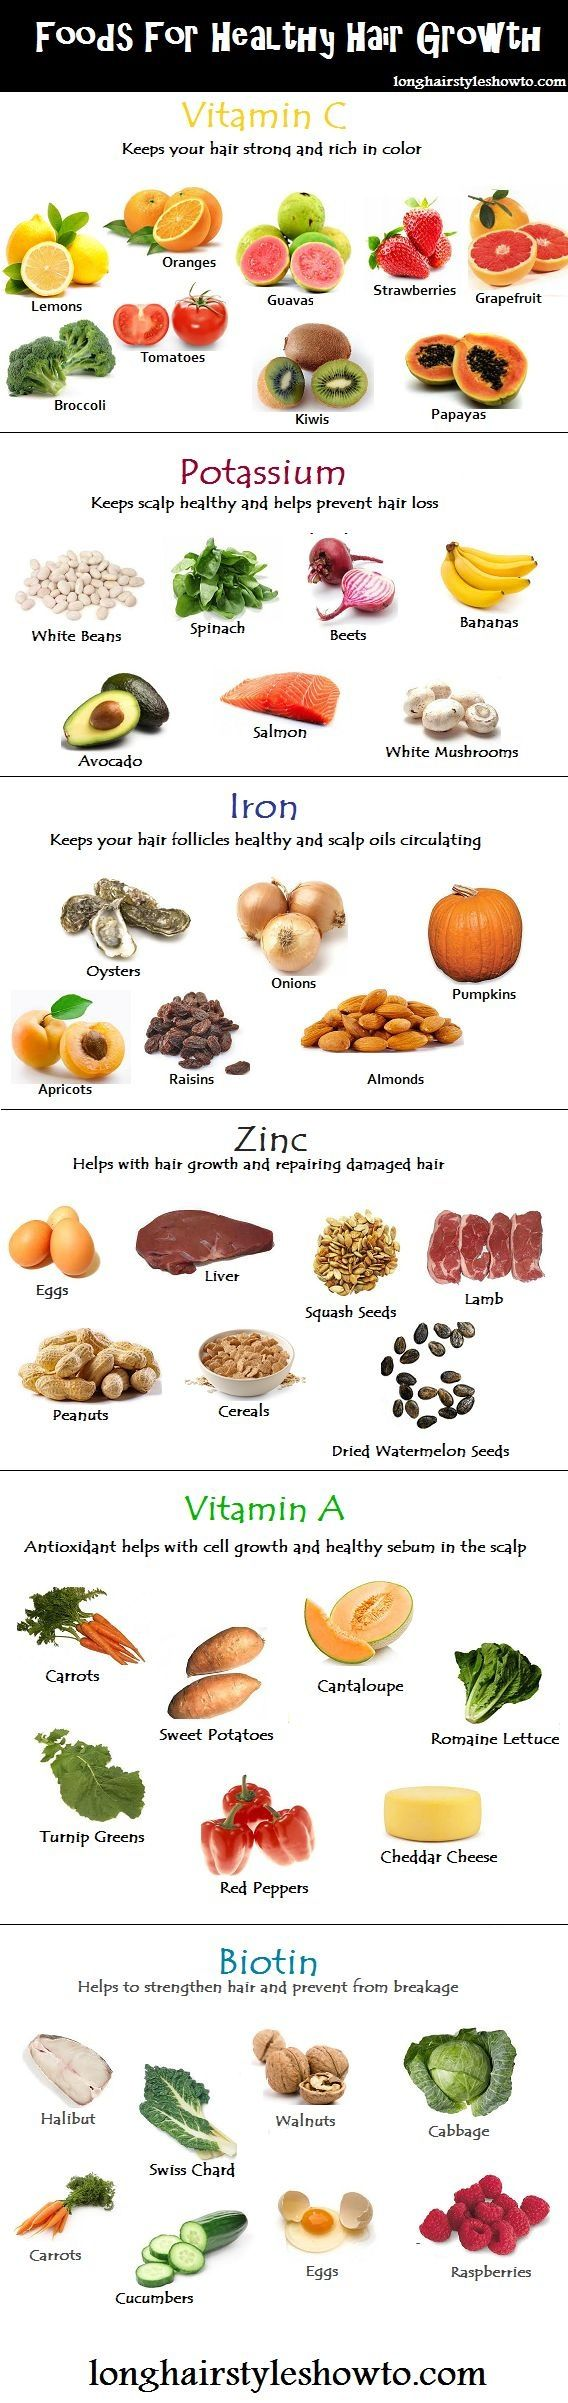 Foods for healthy hair growth hair pinterest forumfinder Choice Image